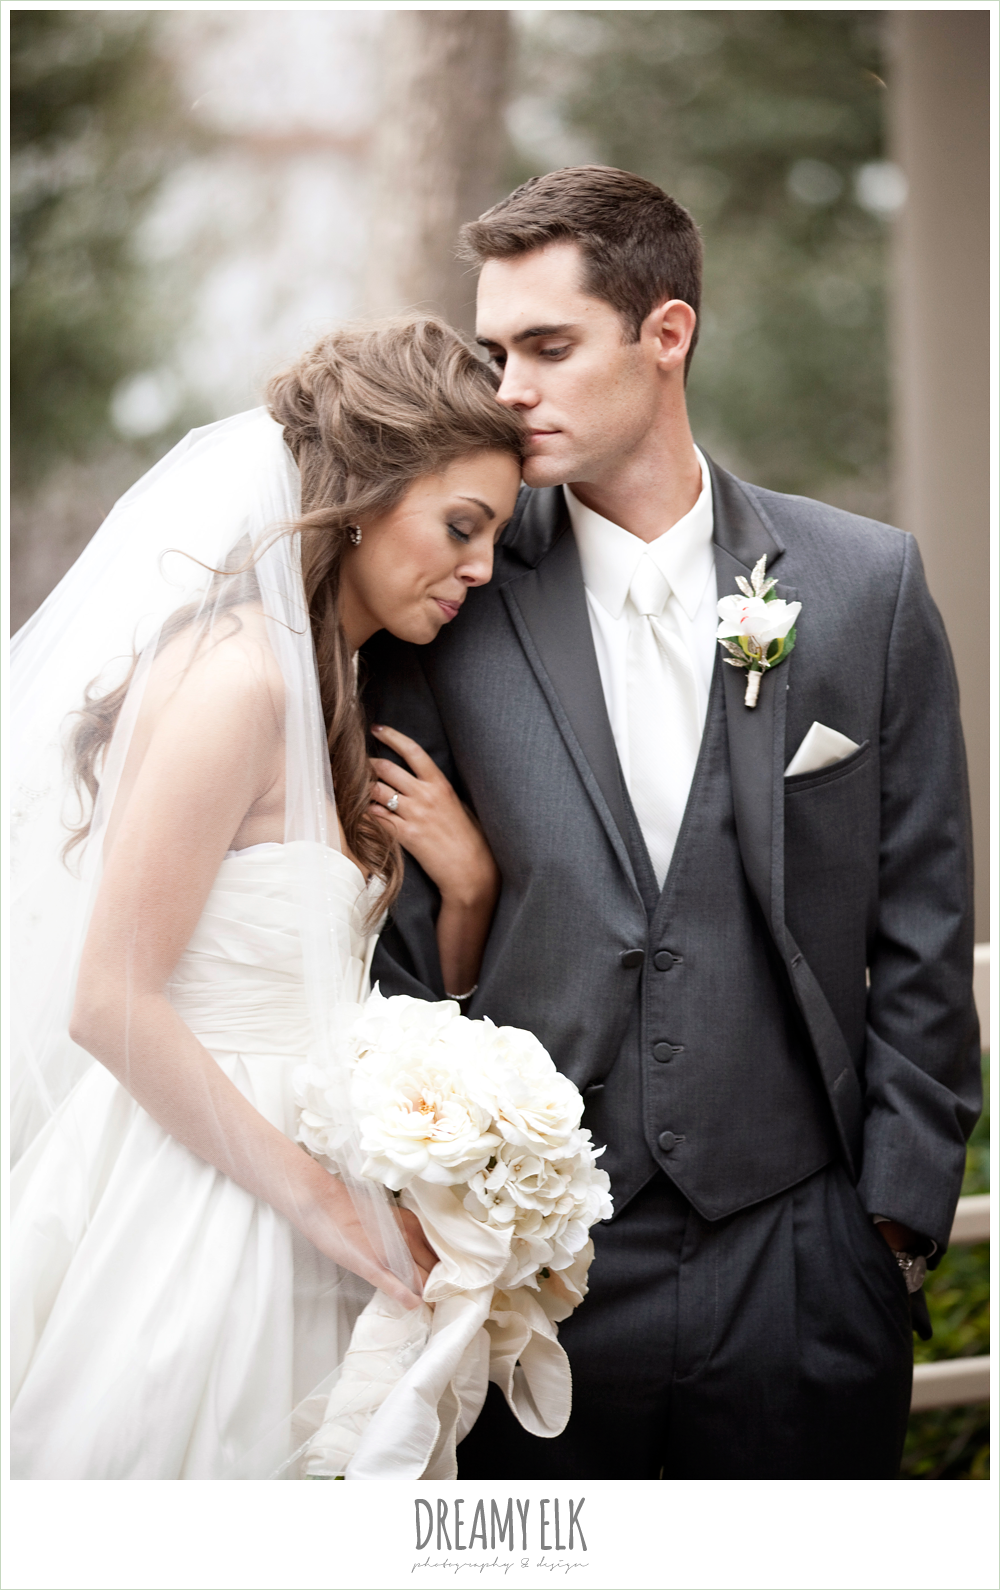 jessica & tyler, the wedding photo contest, college station, texas